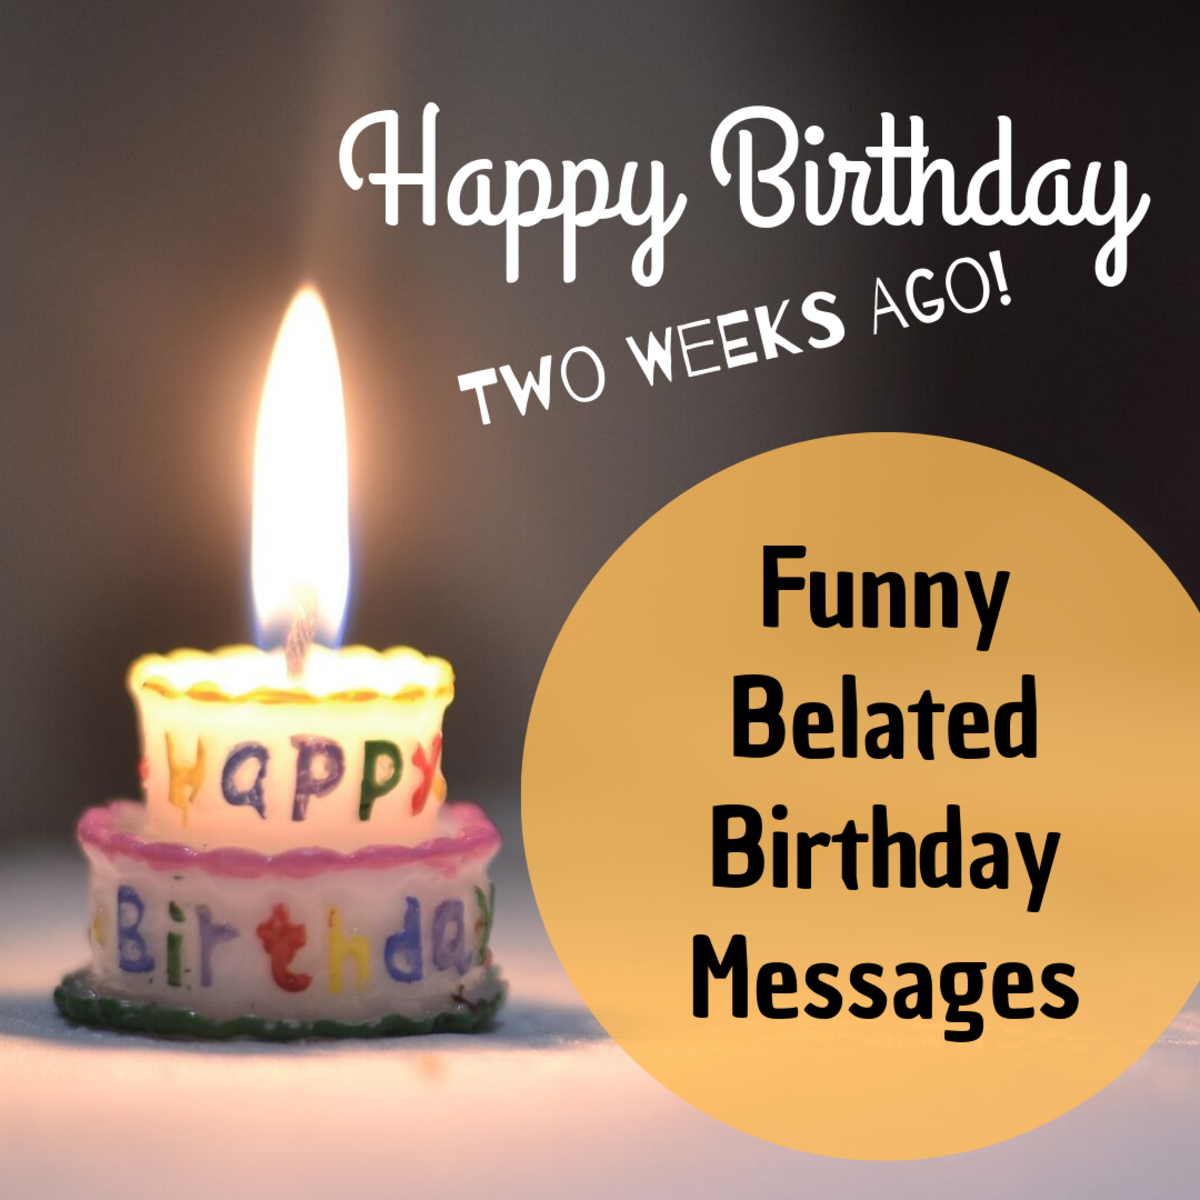 Funny Belated Happy Birthday Wishes: Late Messages and ...